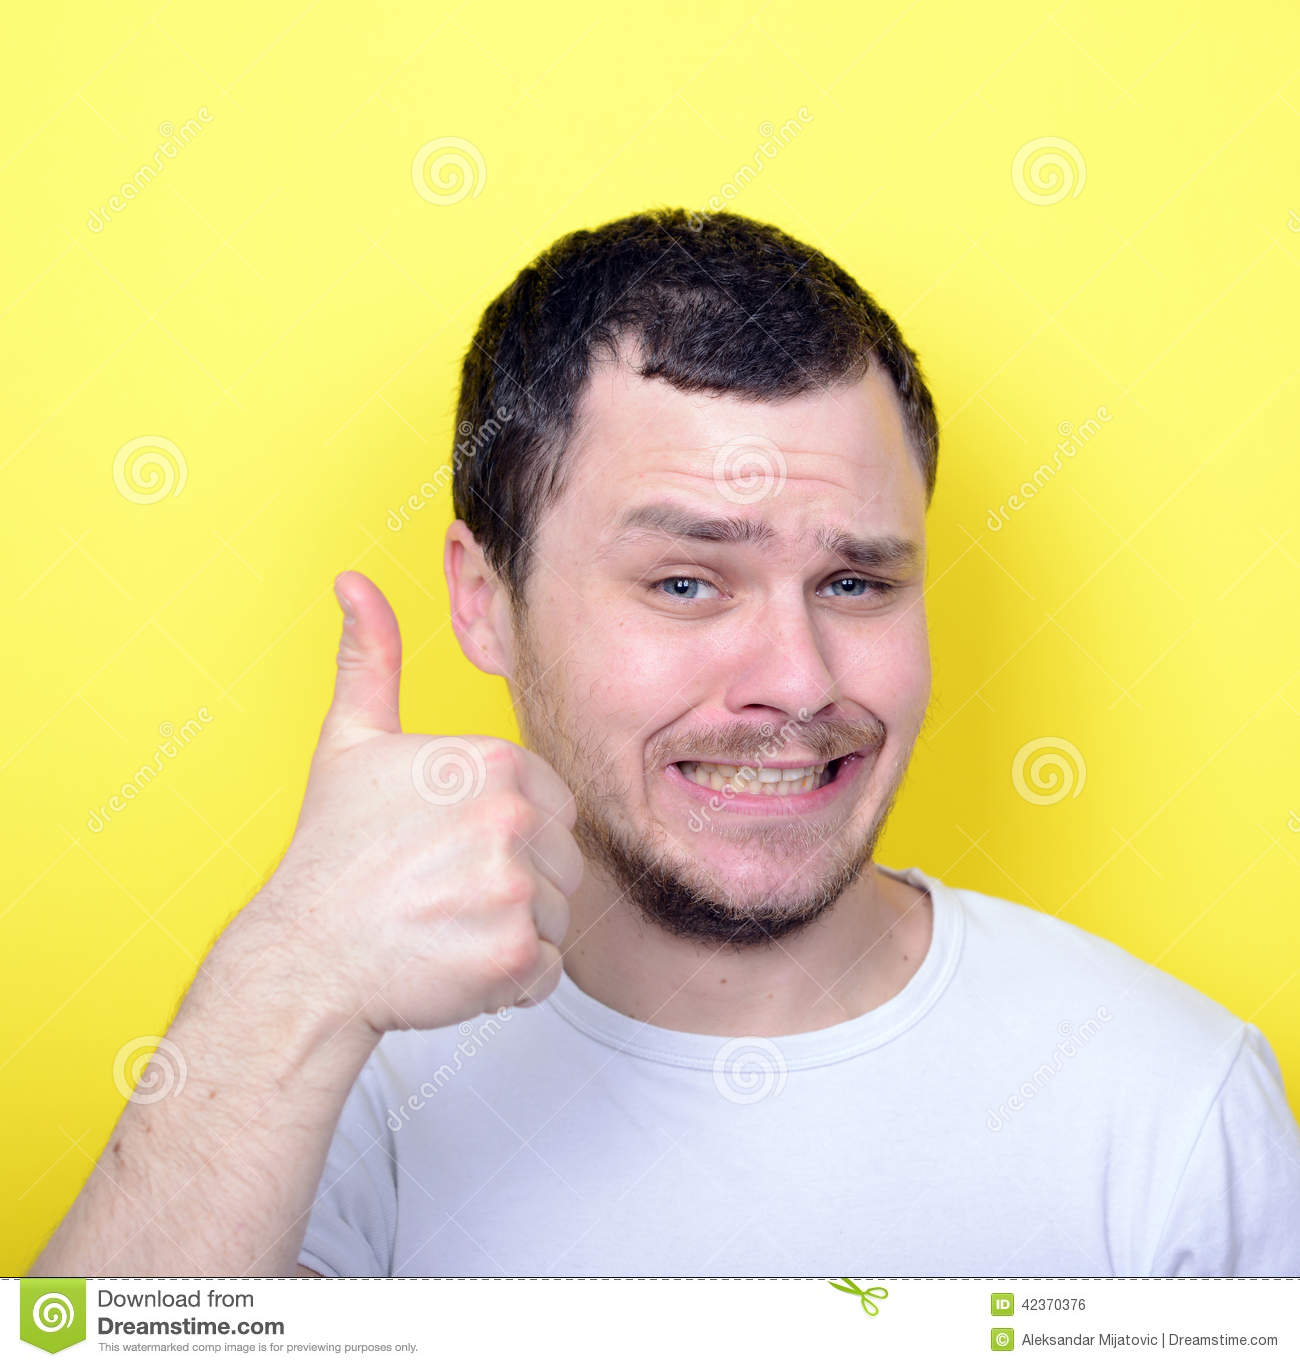 Portrait of with funny expression holding thumbs up against yell